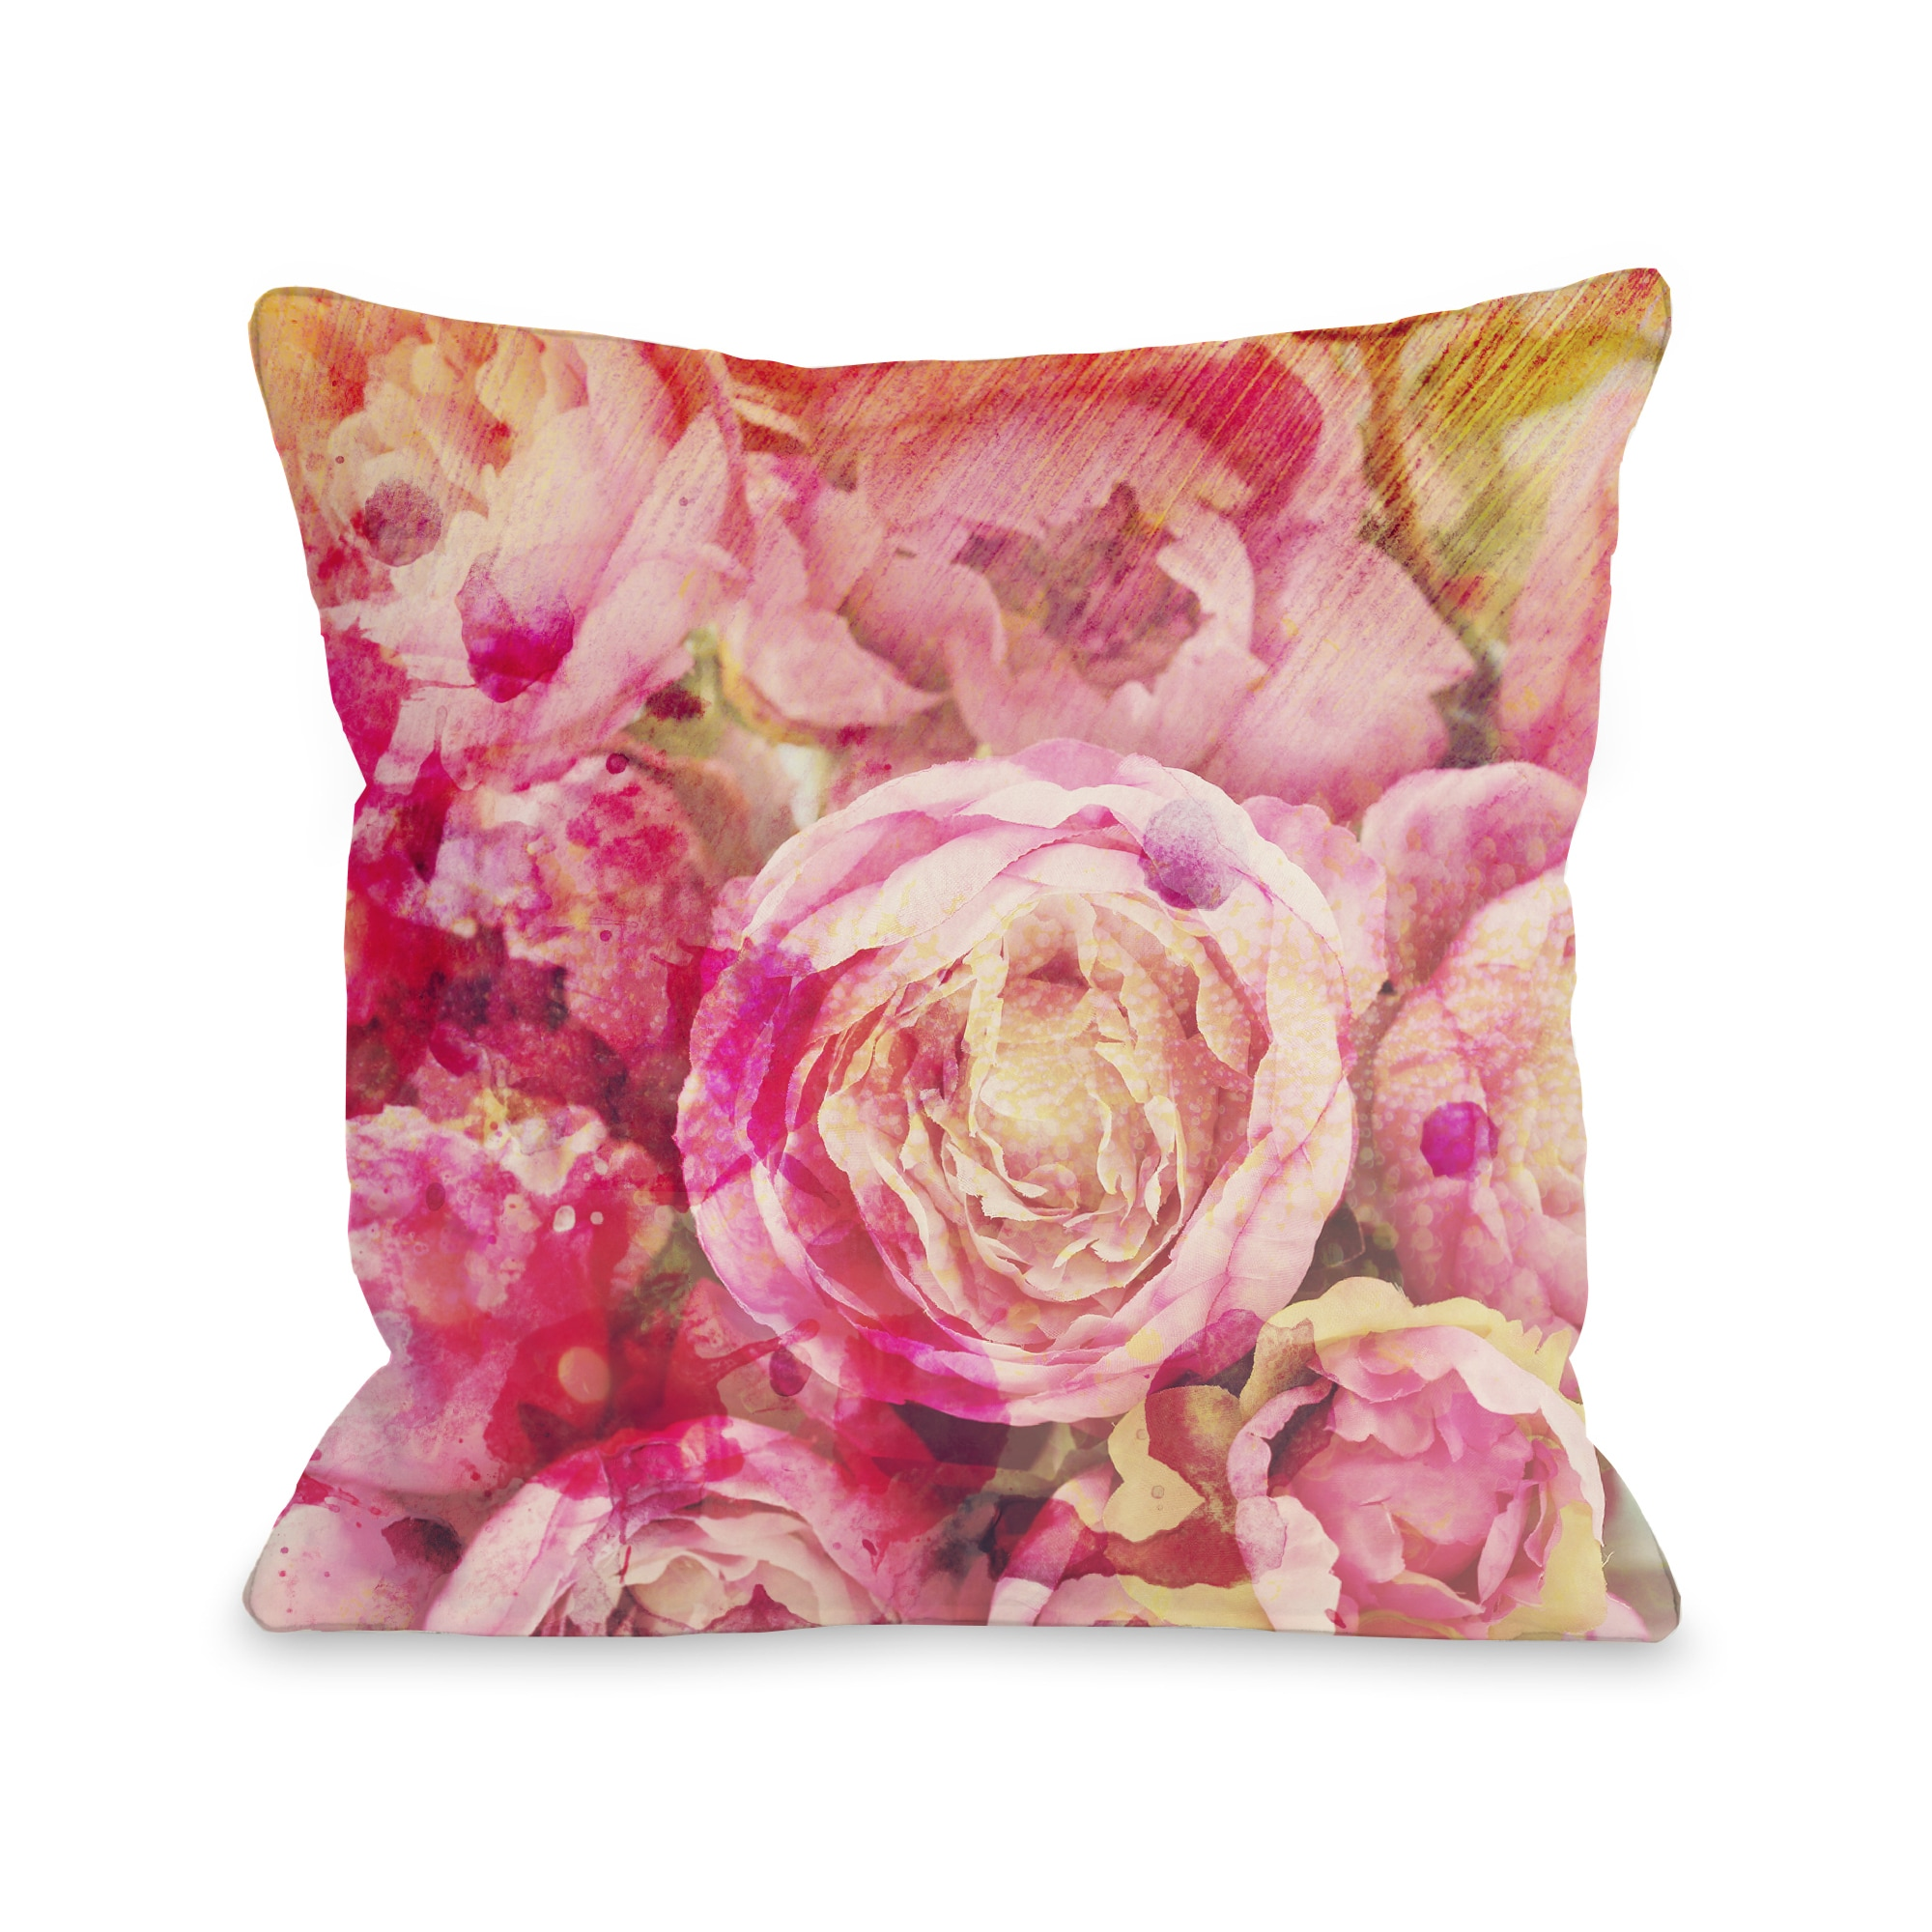 OBC Peony Dreams Multicolored Floral Throw Pillow (16 x 16)